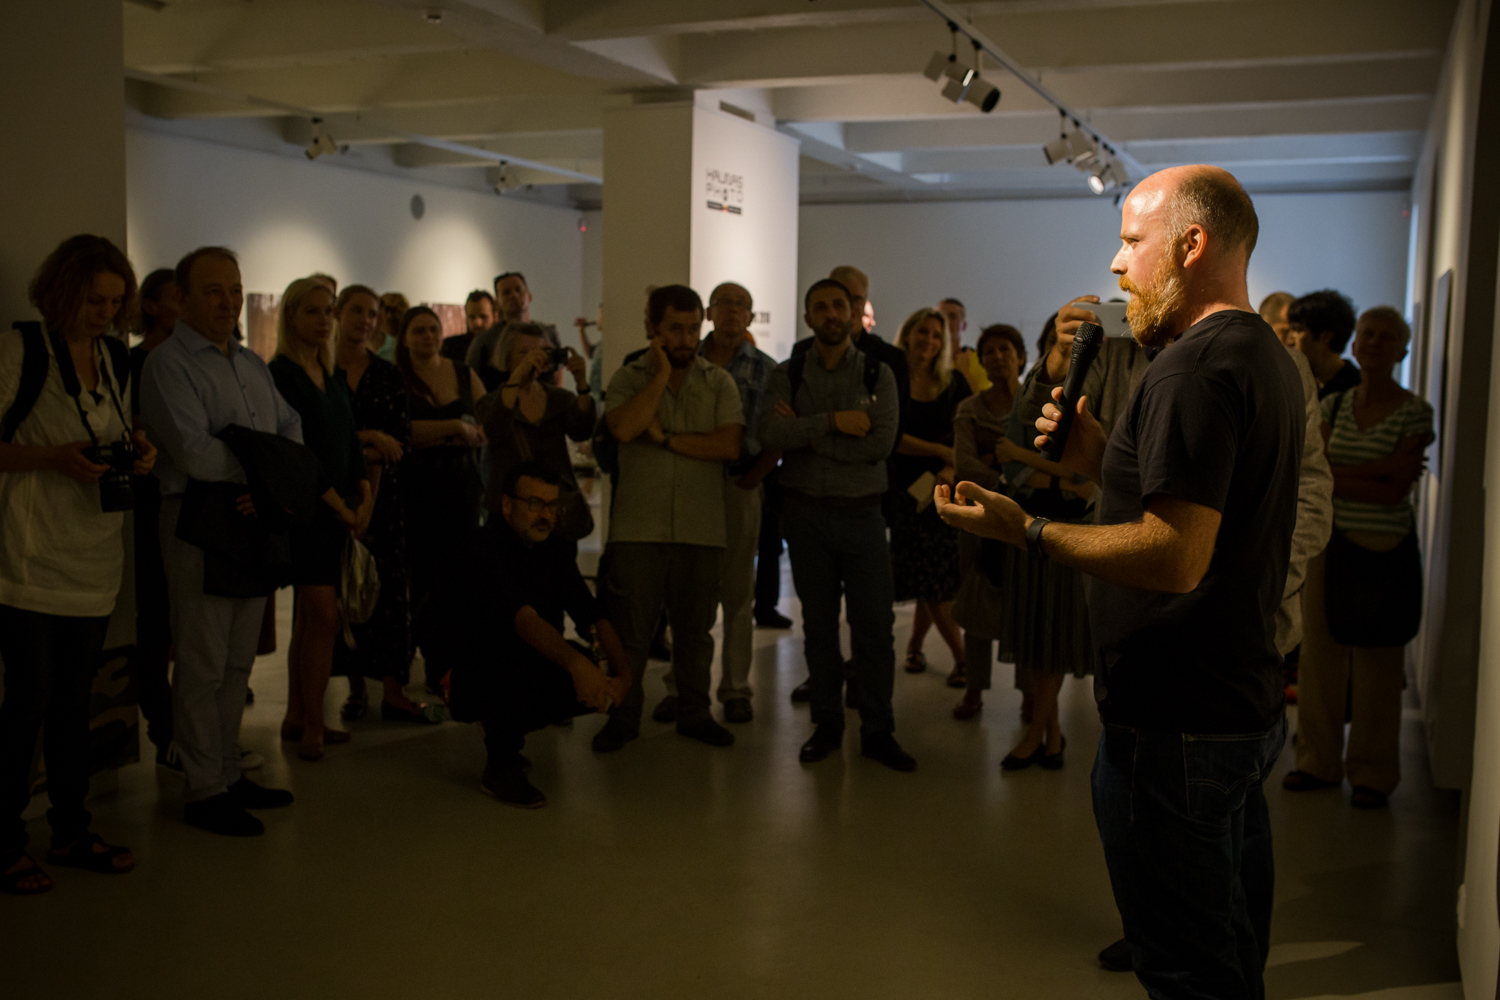 Simon Menner's opening speech in his exhibition at KAUNAS PHOTOGRAPHY GALLERY. September 1, 2018 © Gintarė Žaltauskaitė